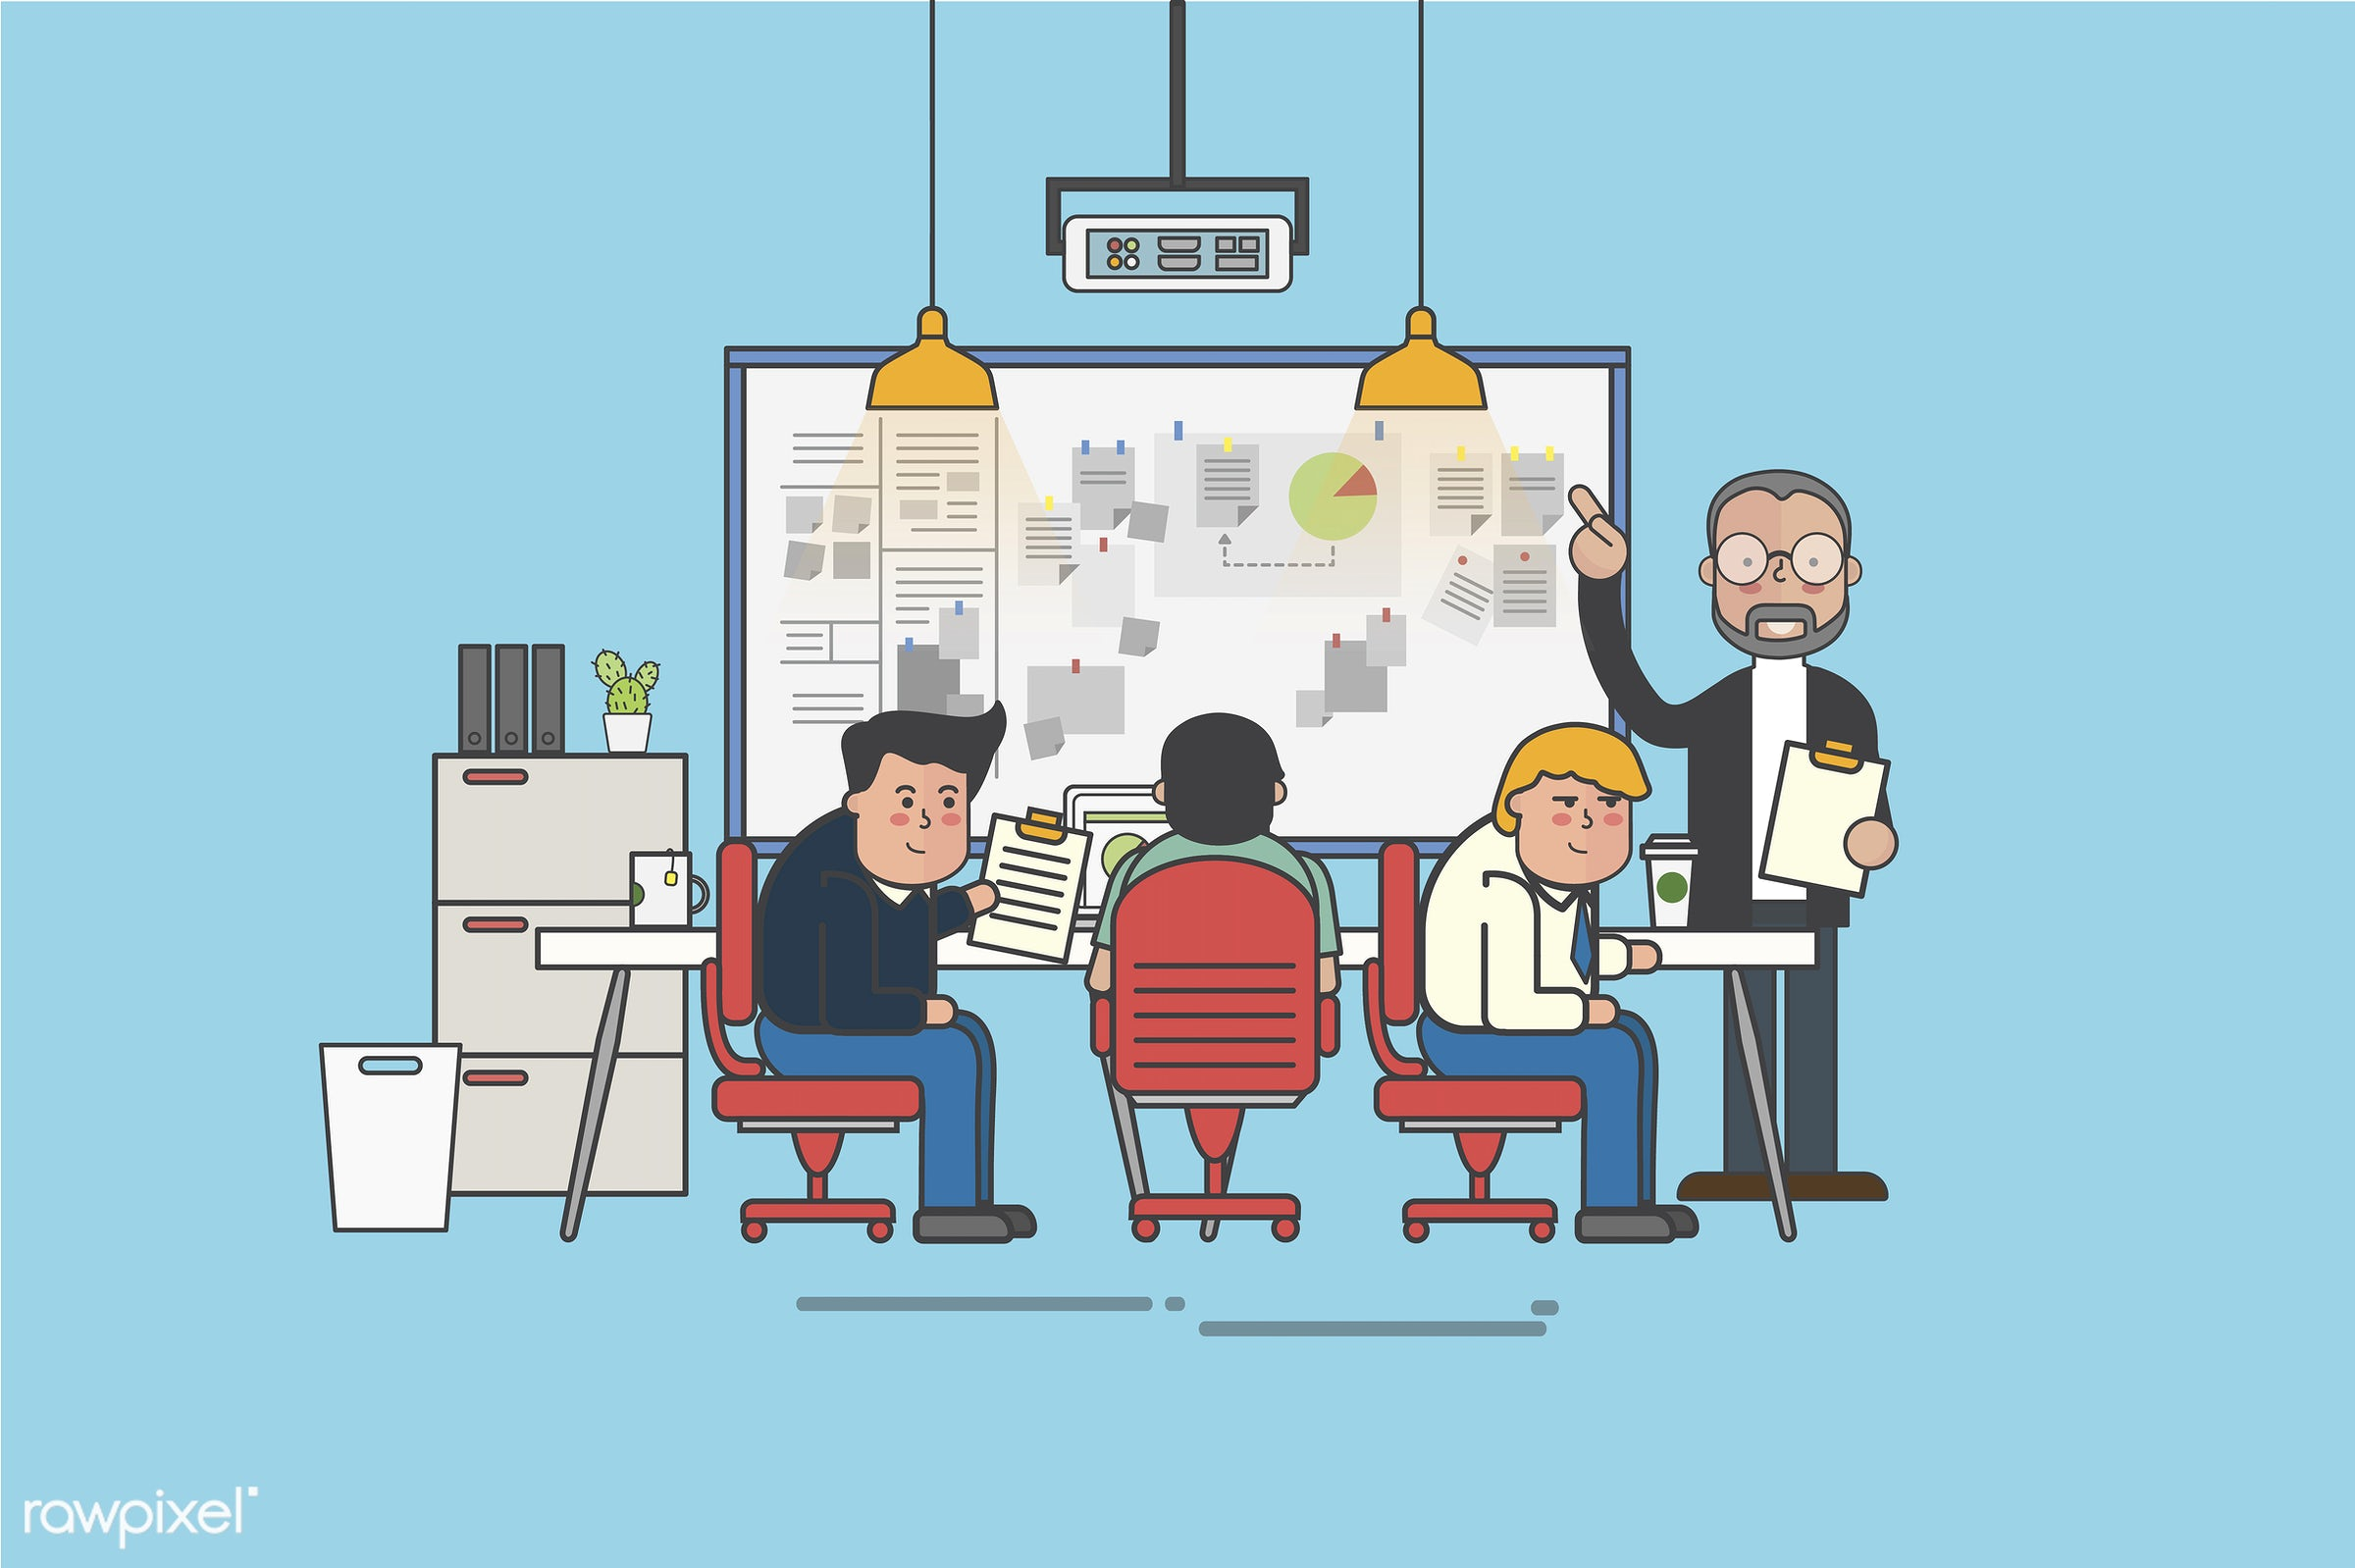 Illustration of an office and office workers - analysis, artwork, avatar, business, cartoon, character, conference,...